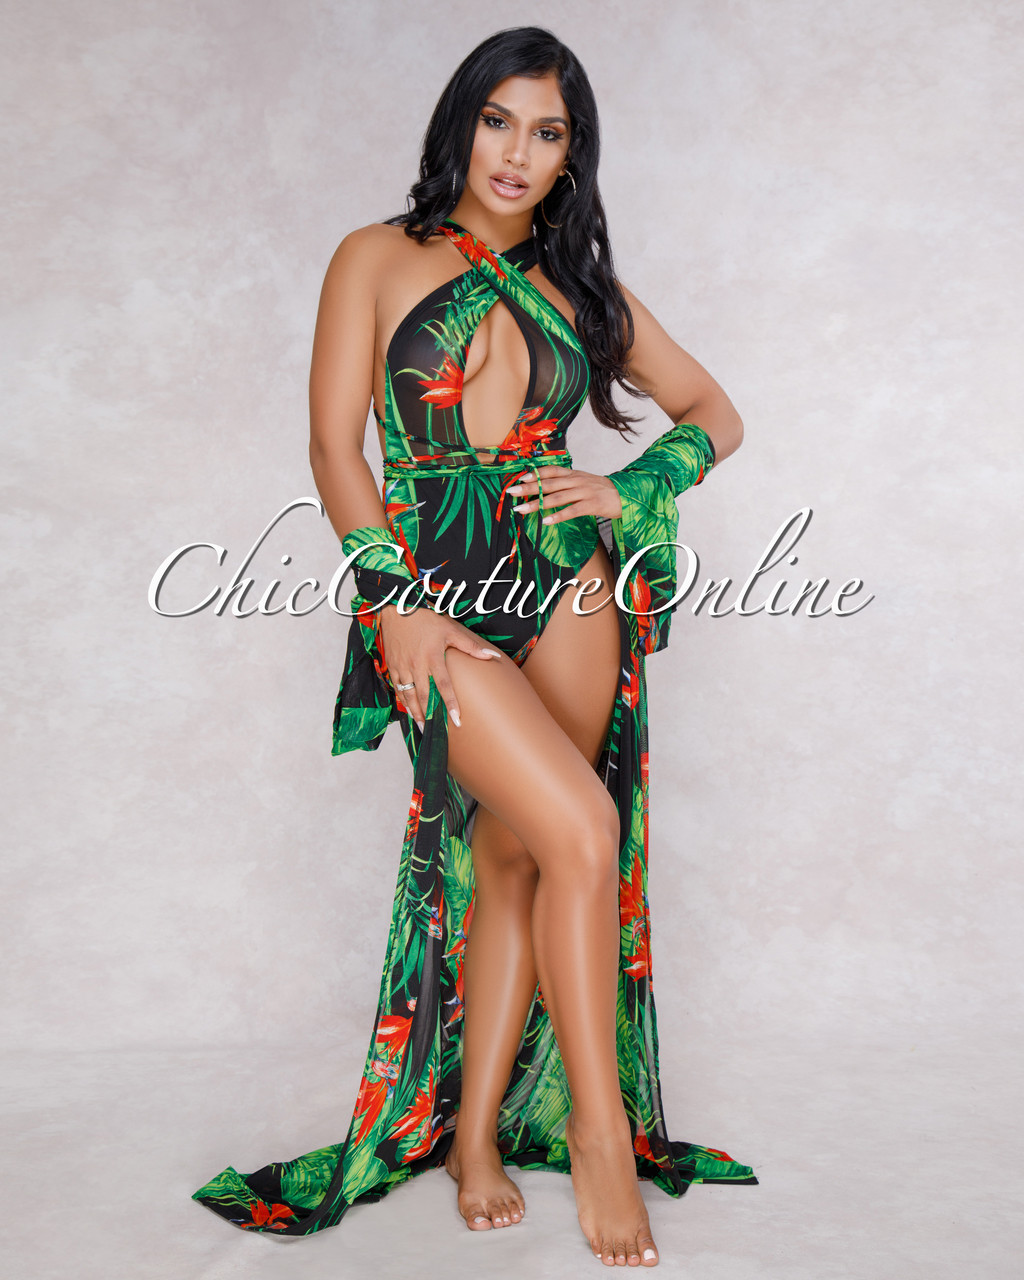 bf3a3a6d584ac Aruba Green Leaf Red Floral Print Mesh Swimsuit Cover-up Set. Your Price    65.00 (You save  20.00). Image 1. Larger   More Photos